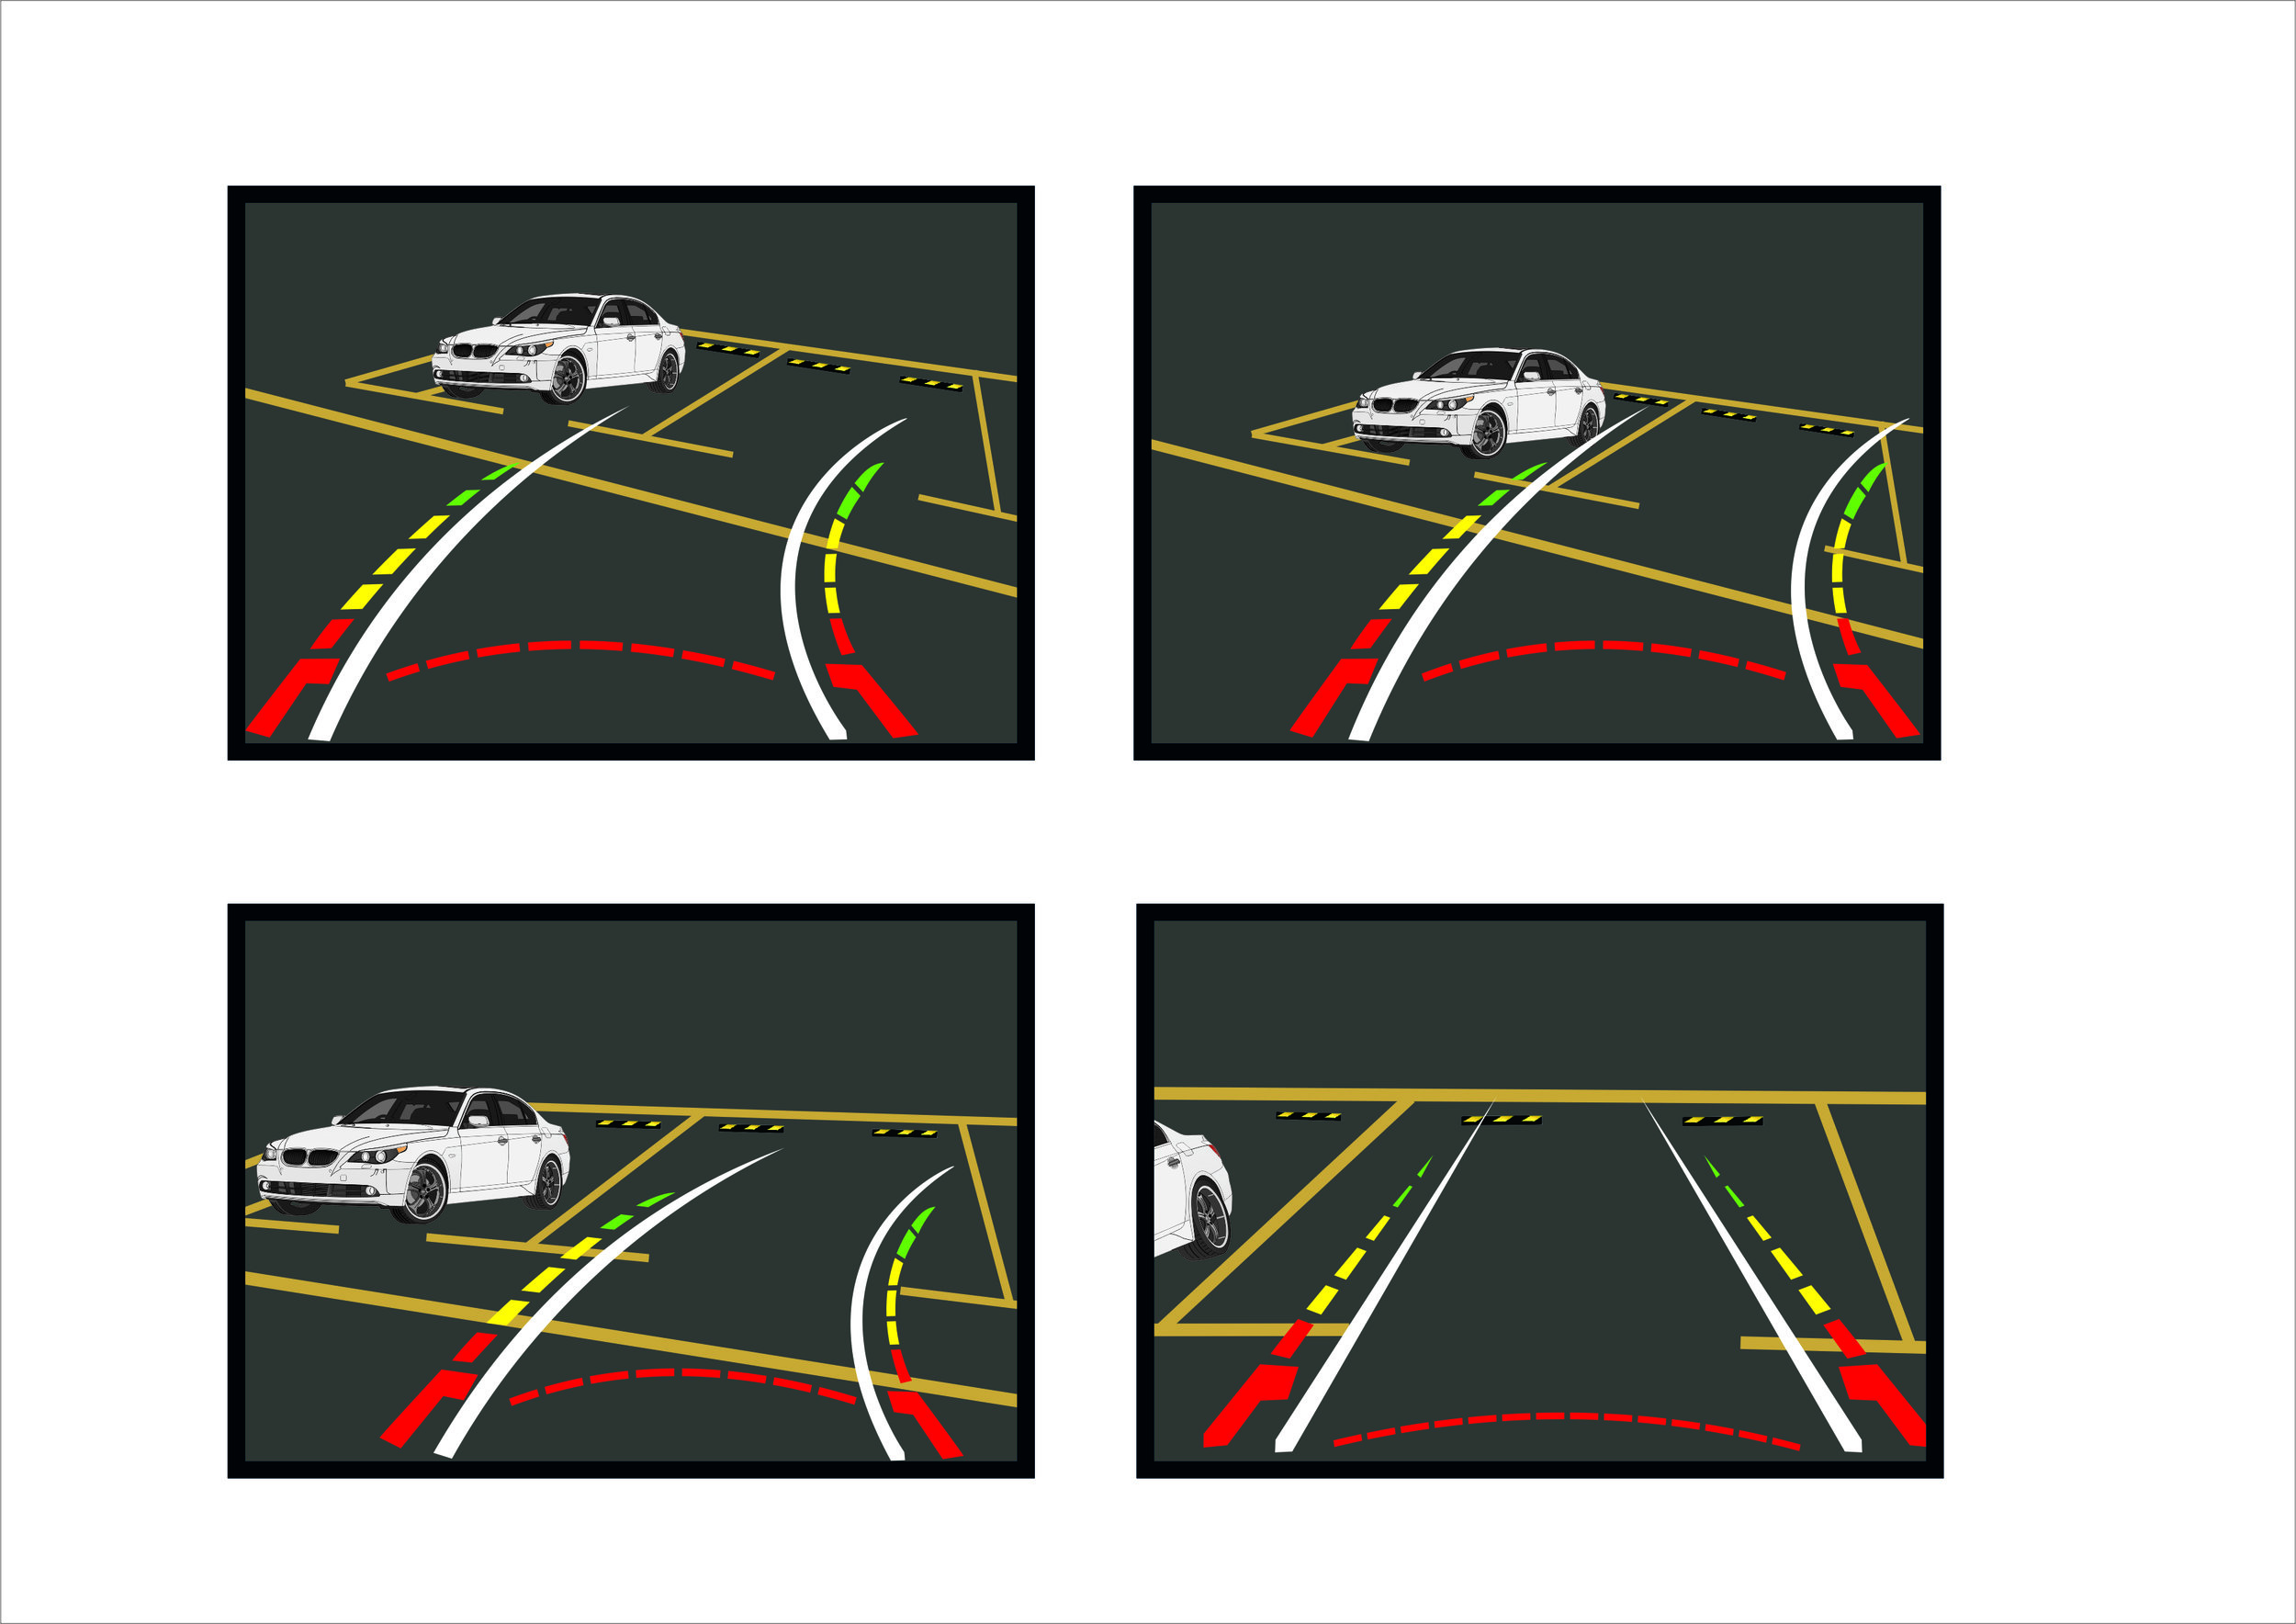 DYNAMIC MOVING GUIDELINES CAMERA